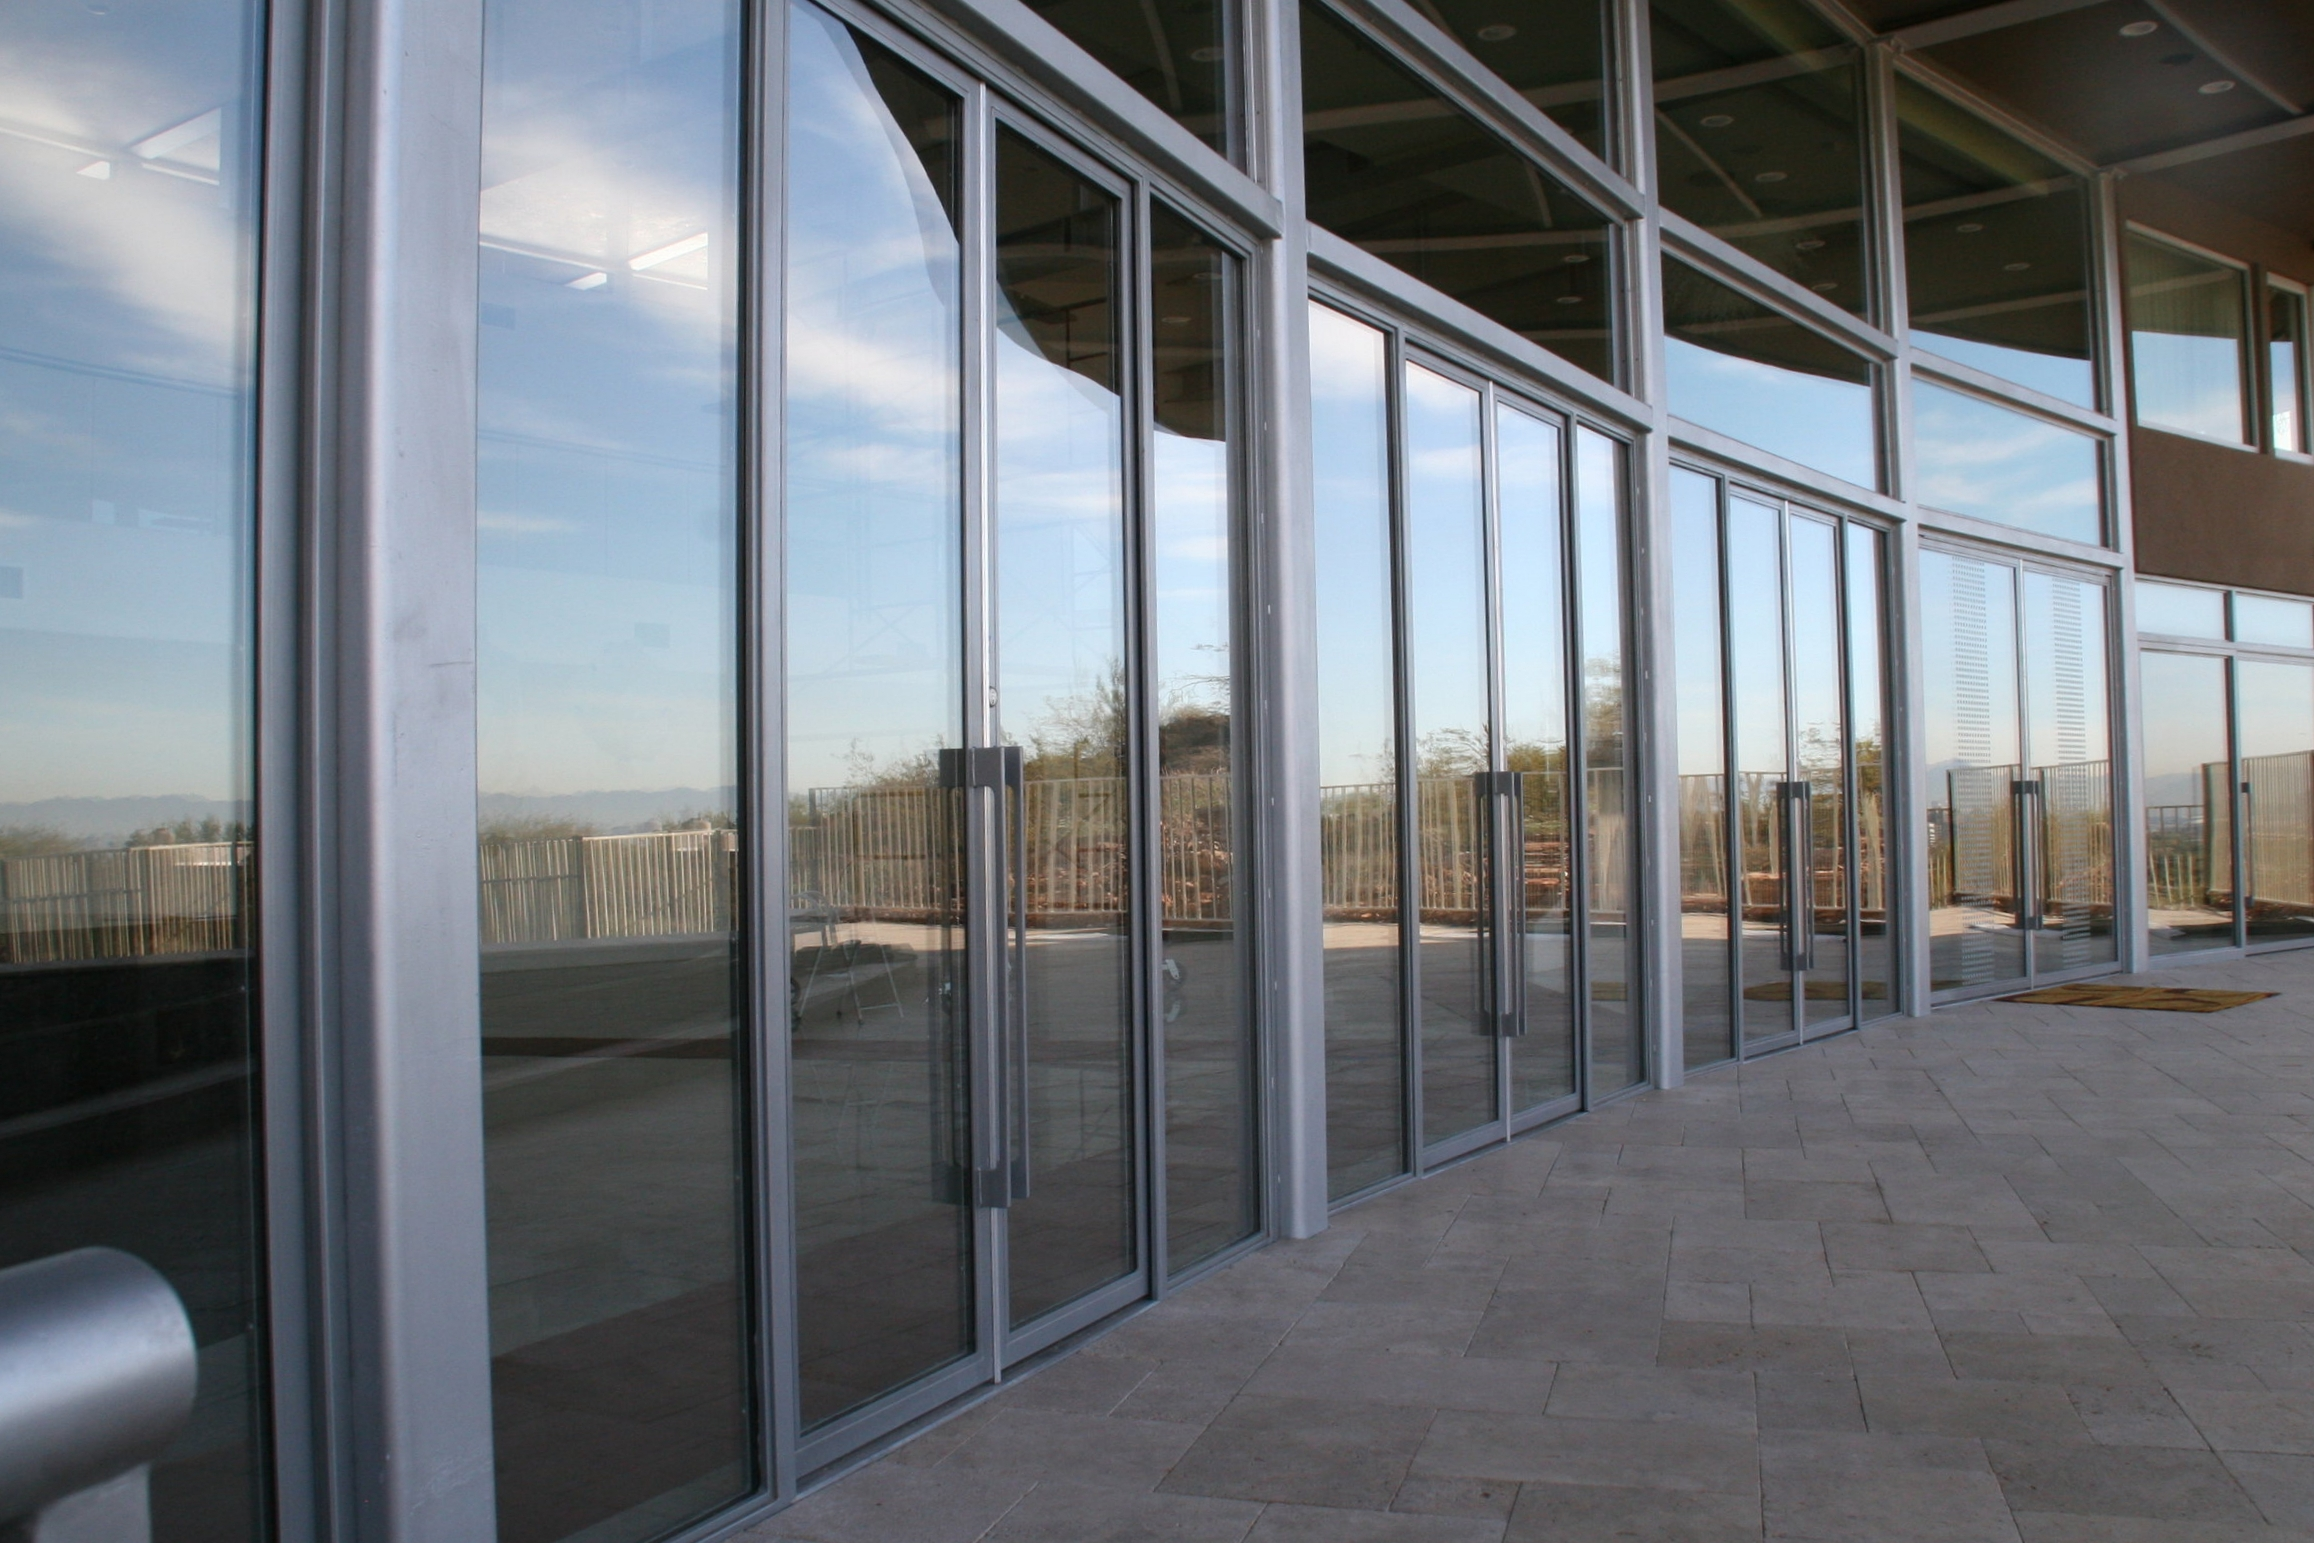 COMMERCIAL IRON AND GLASS DOOR 11  Our steel and glass doors are engineered to virtually span any height. A segment of this extensive wall of steel and glass doors and windows brought power, light and beauty to the front elevation of this contemporary project.